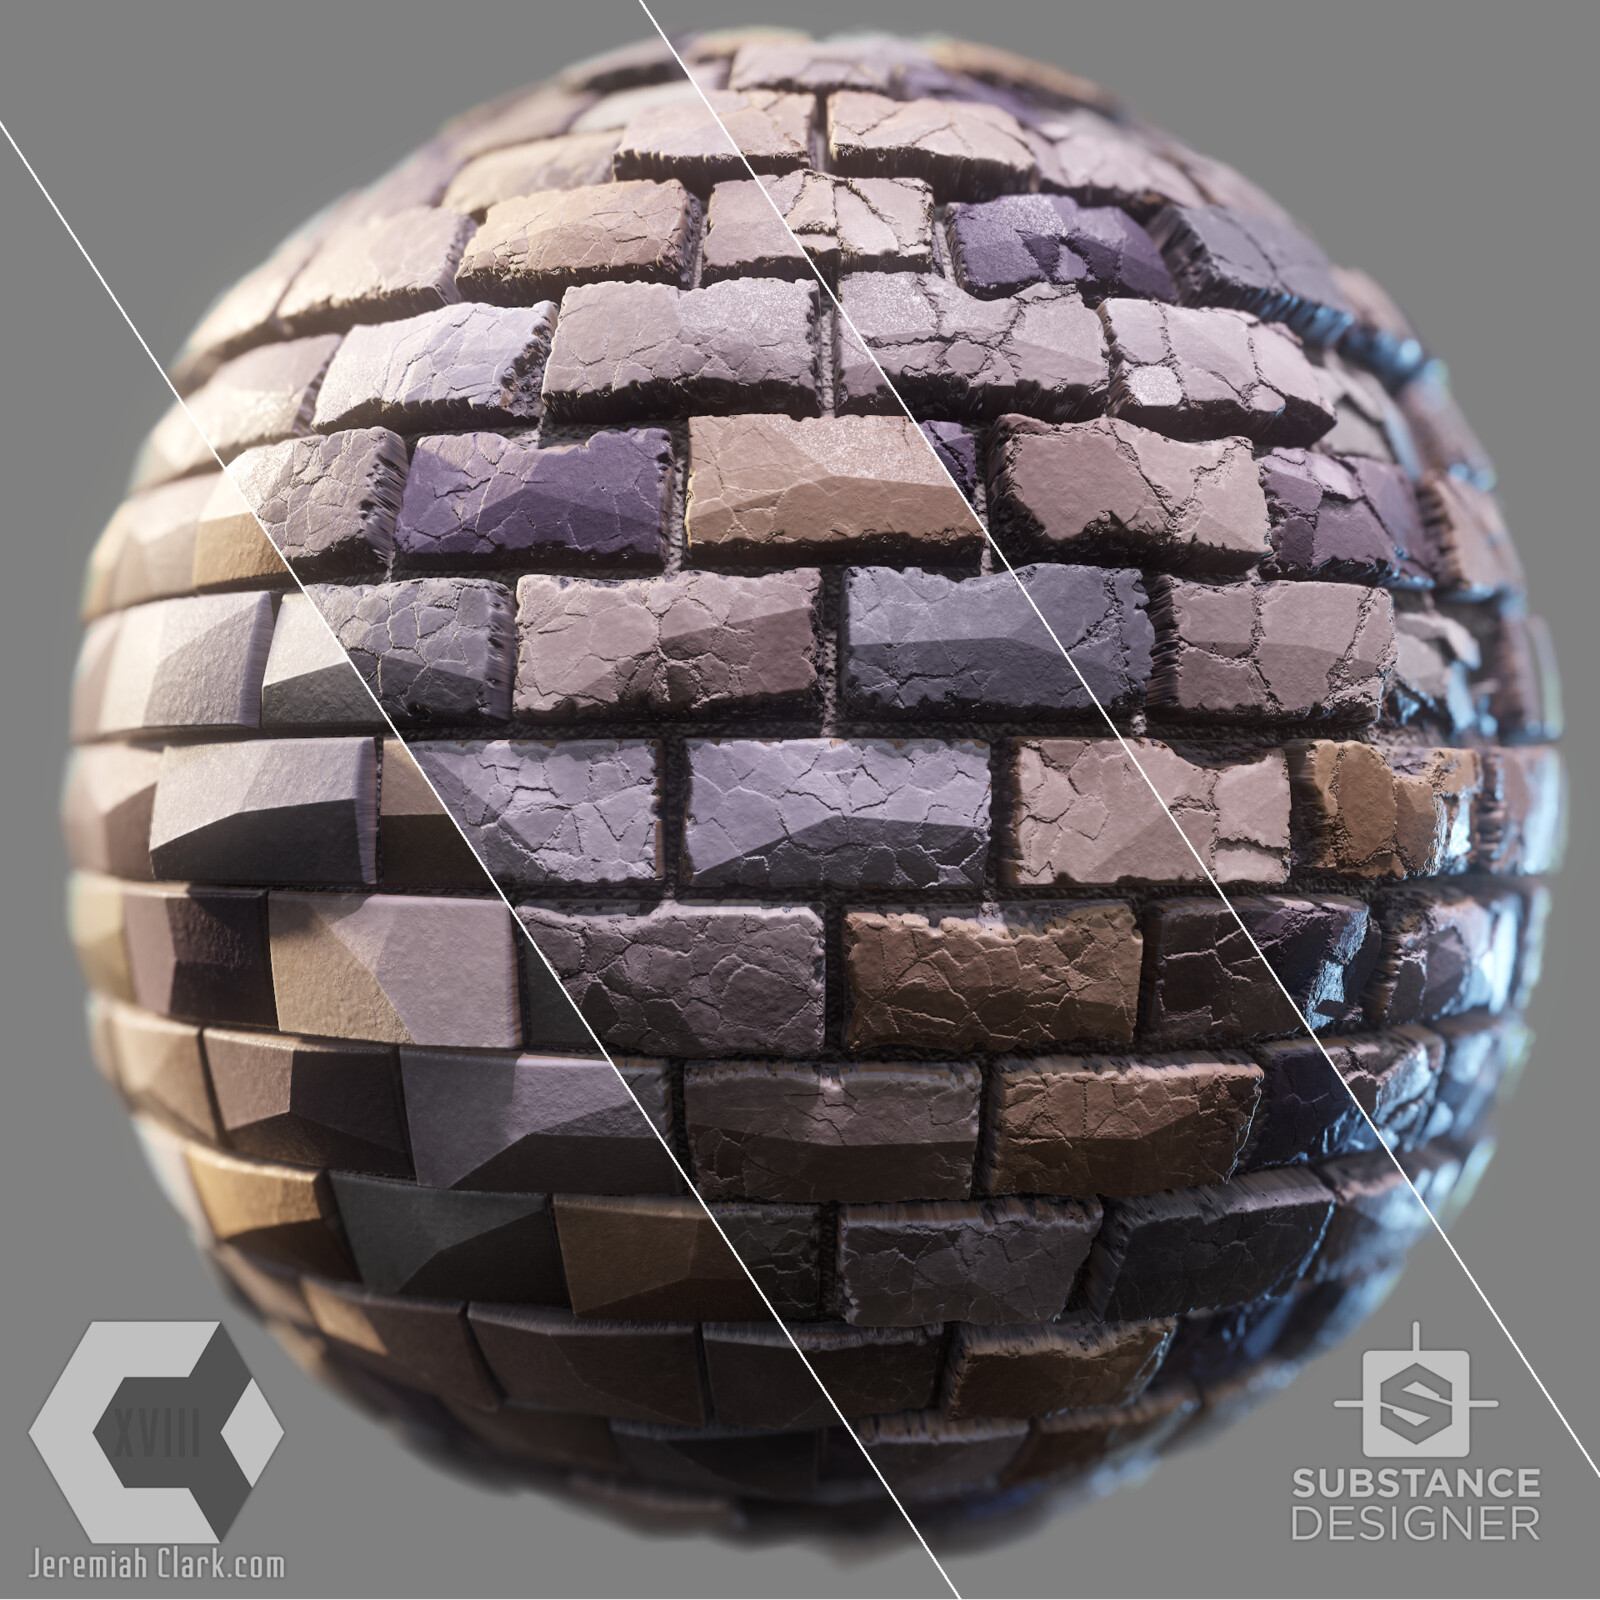 The material includes dynamic crack and wear options controlled by sliders.